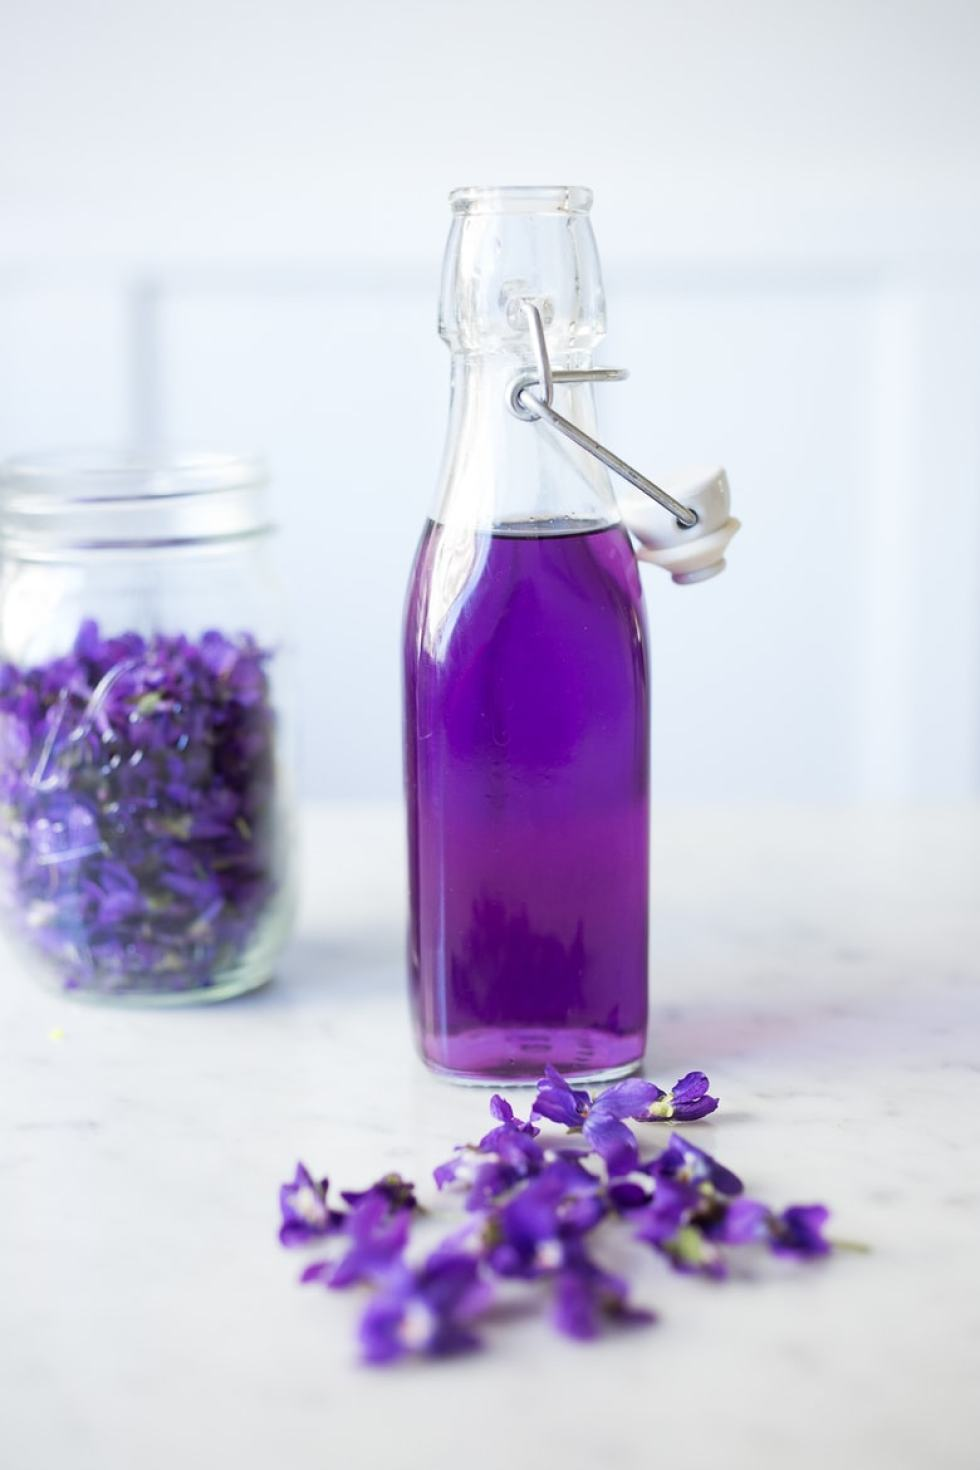 An easy recipe for Violet Simple Syrup- lovely in cocktails like a Violet infused French 75 - perfect for Mothers Day, Bridal Showers or Weddings. Romantic, floral, feminine. | www.feastingathome.com